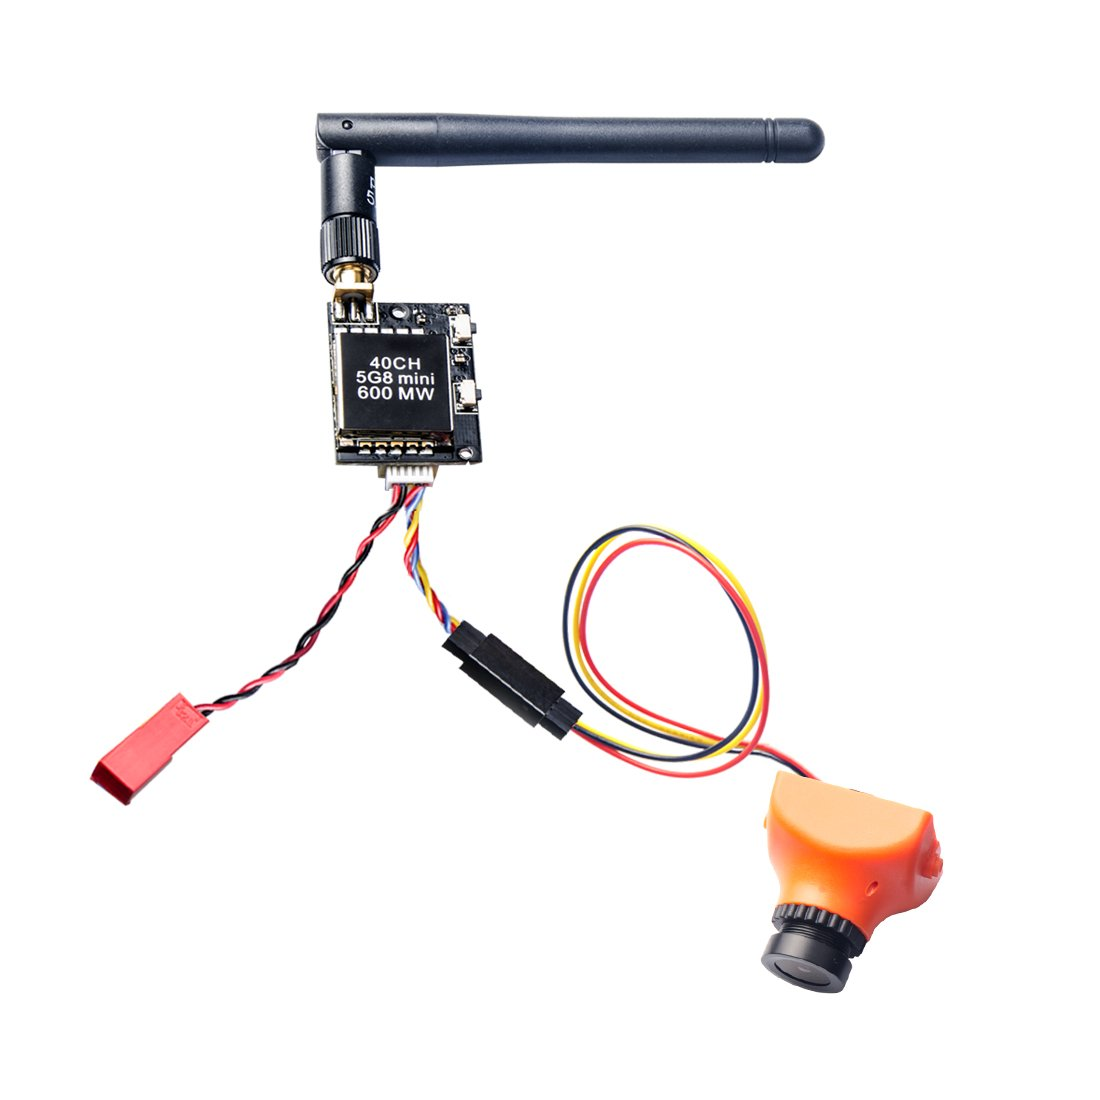 AKK KC02 600mW FPV Transmitter with 600TVL 2.8MM 120 Degree High Picture Quality Sony CCD Camera for FPV Multicopter by AKK